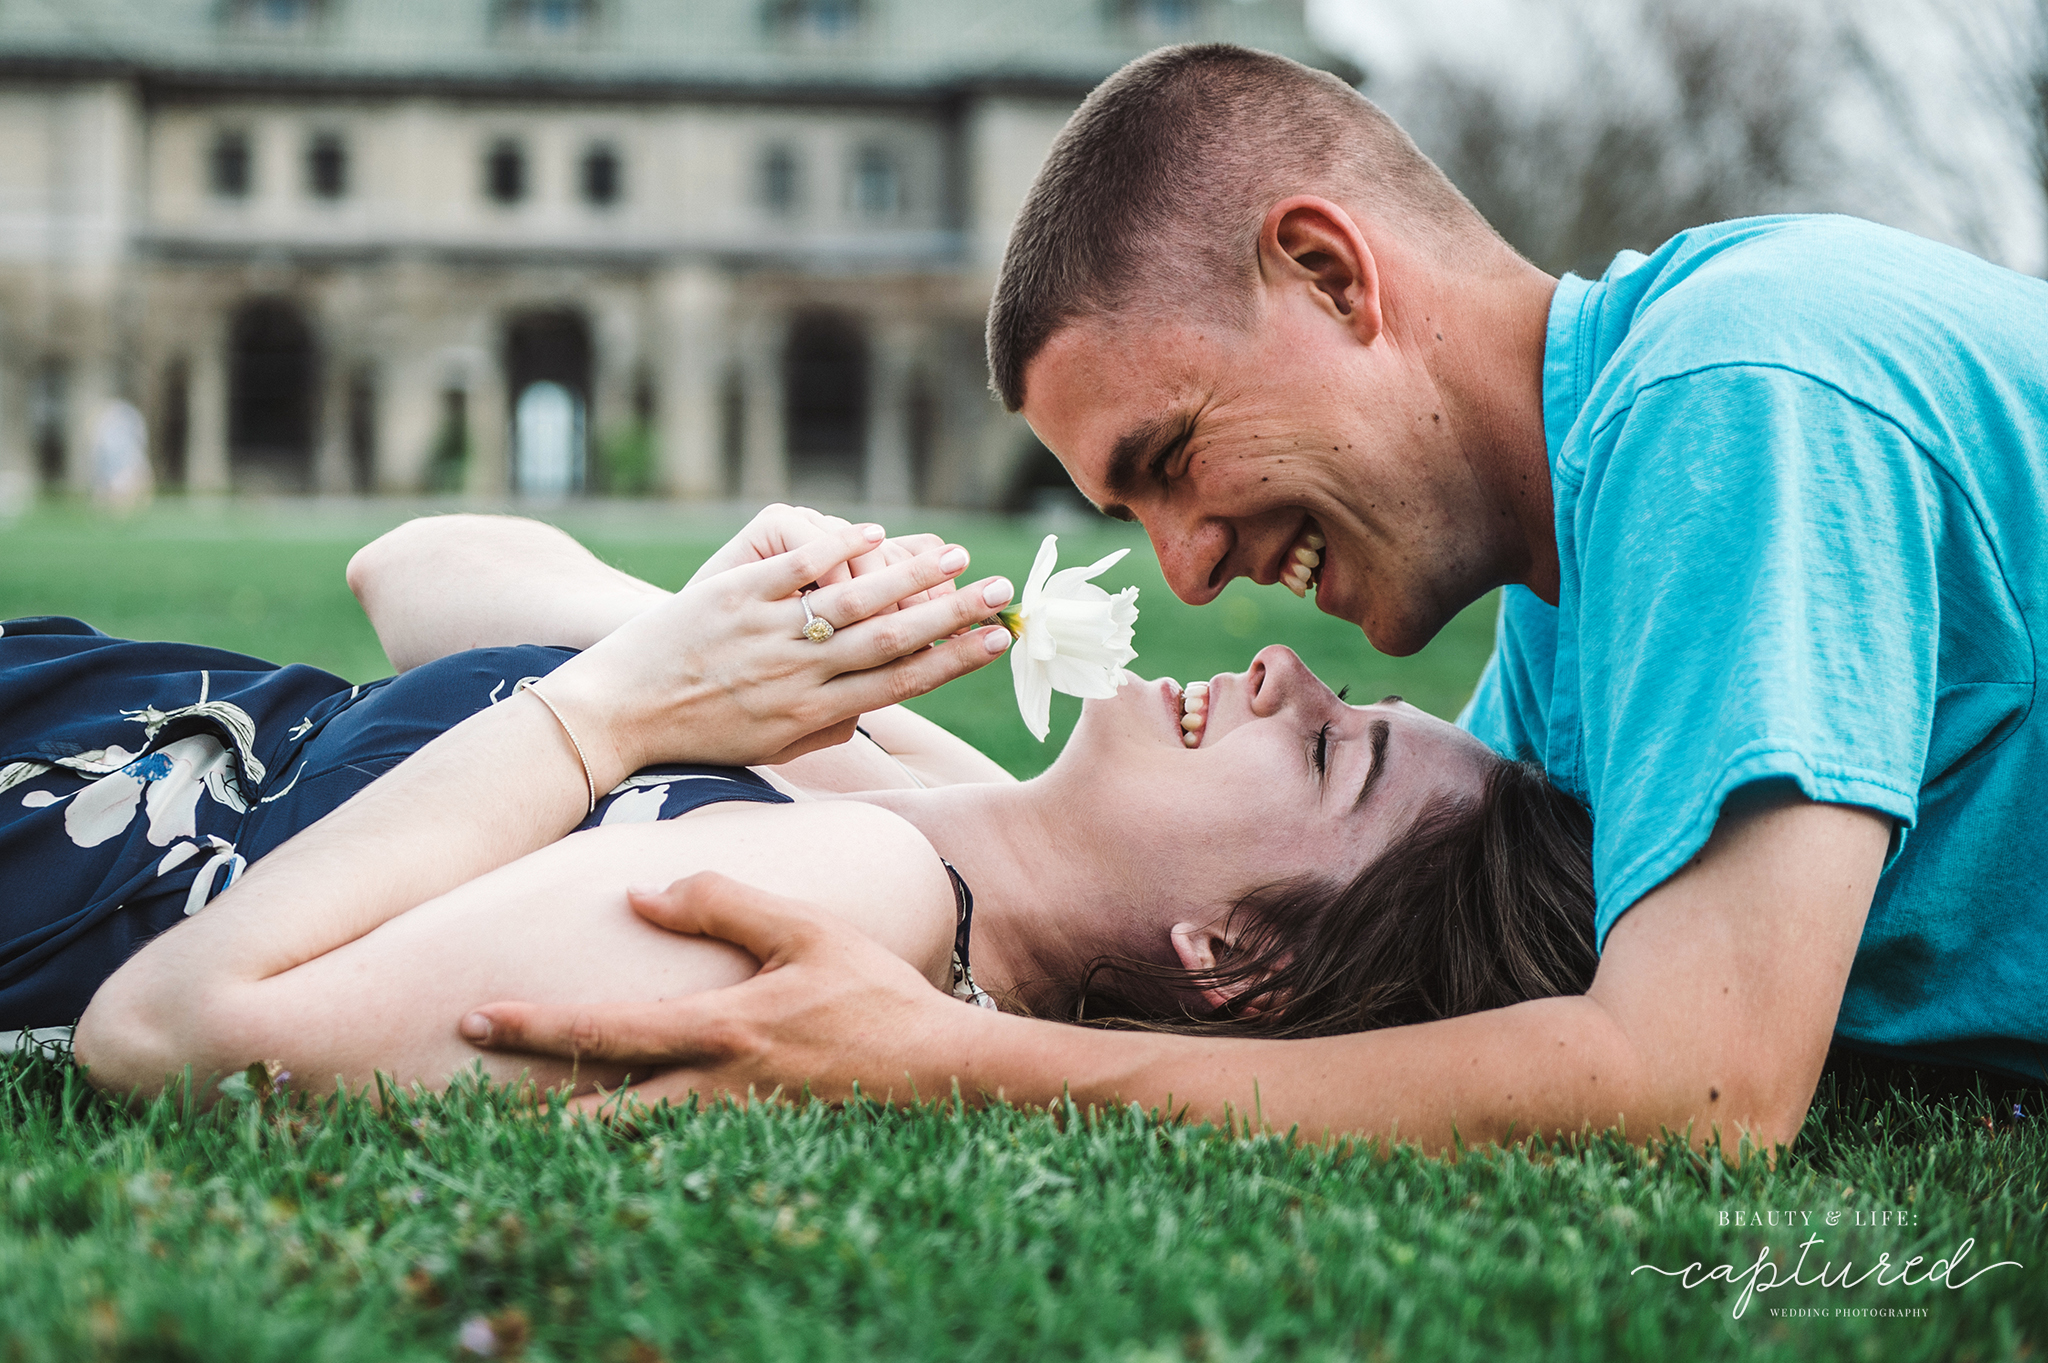 Beautyandlifecaptured_Christina_Engagement-37.jpg